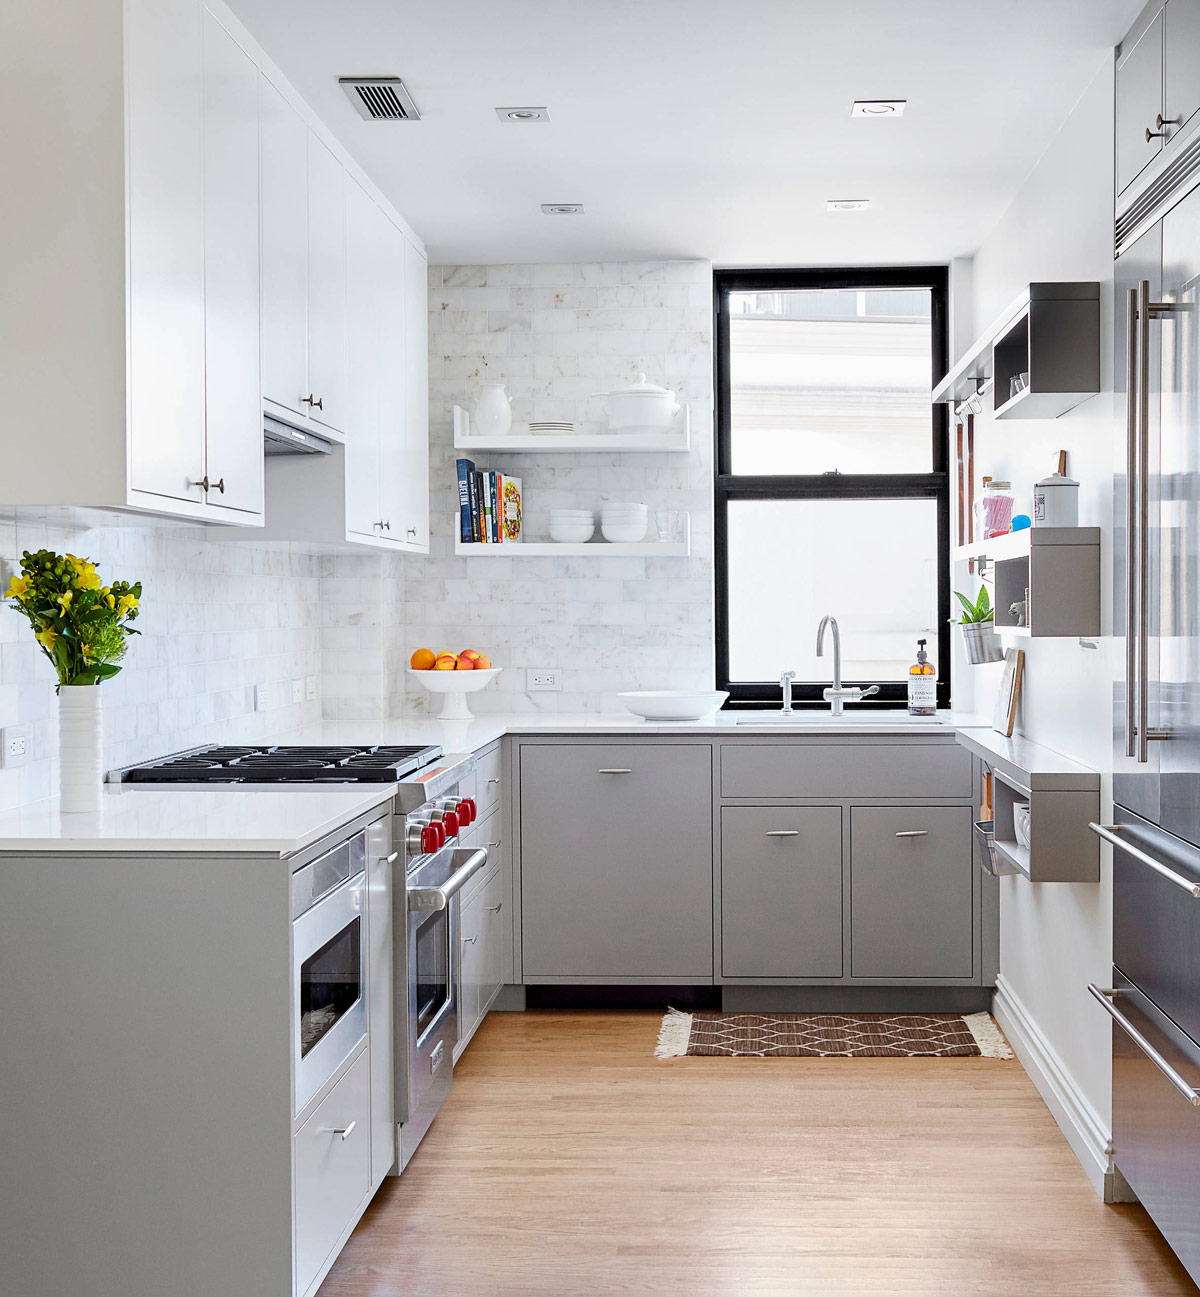 Gorgeous Grey And White Kitchens That Get Their Mix Right - Backsplash ideas for gray cabinets